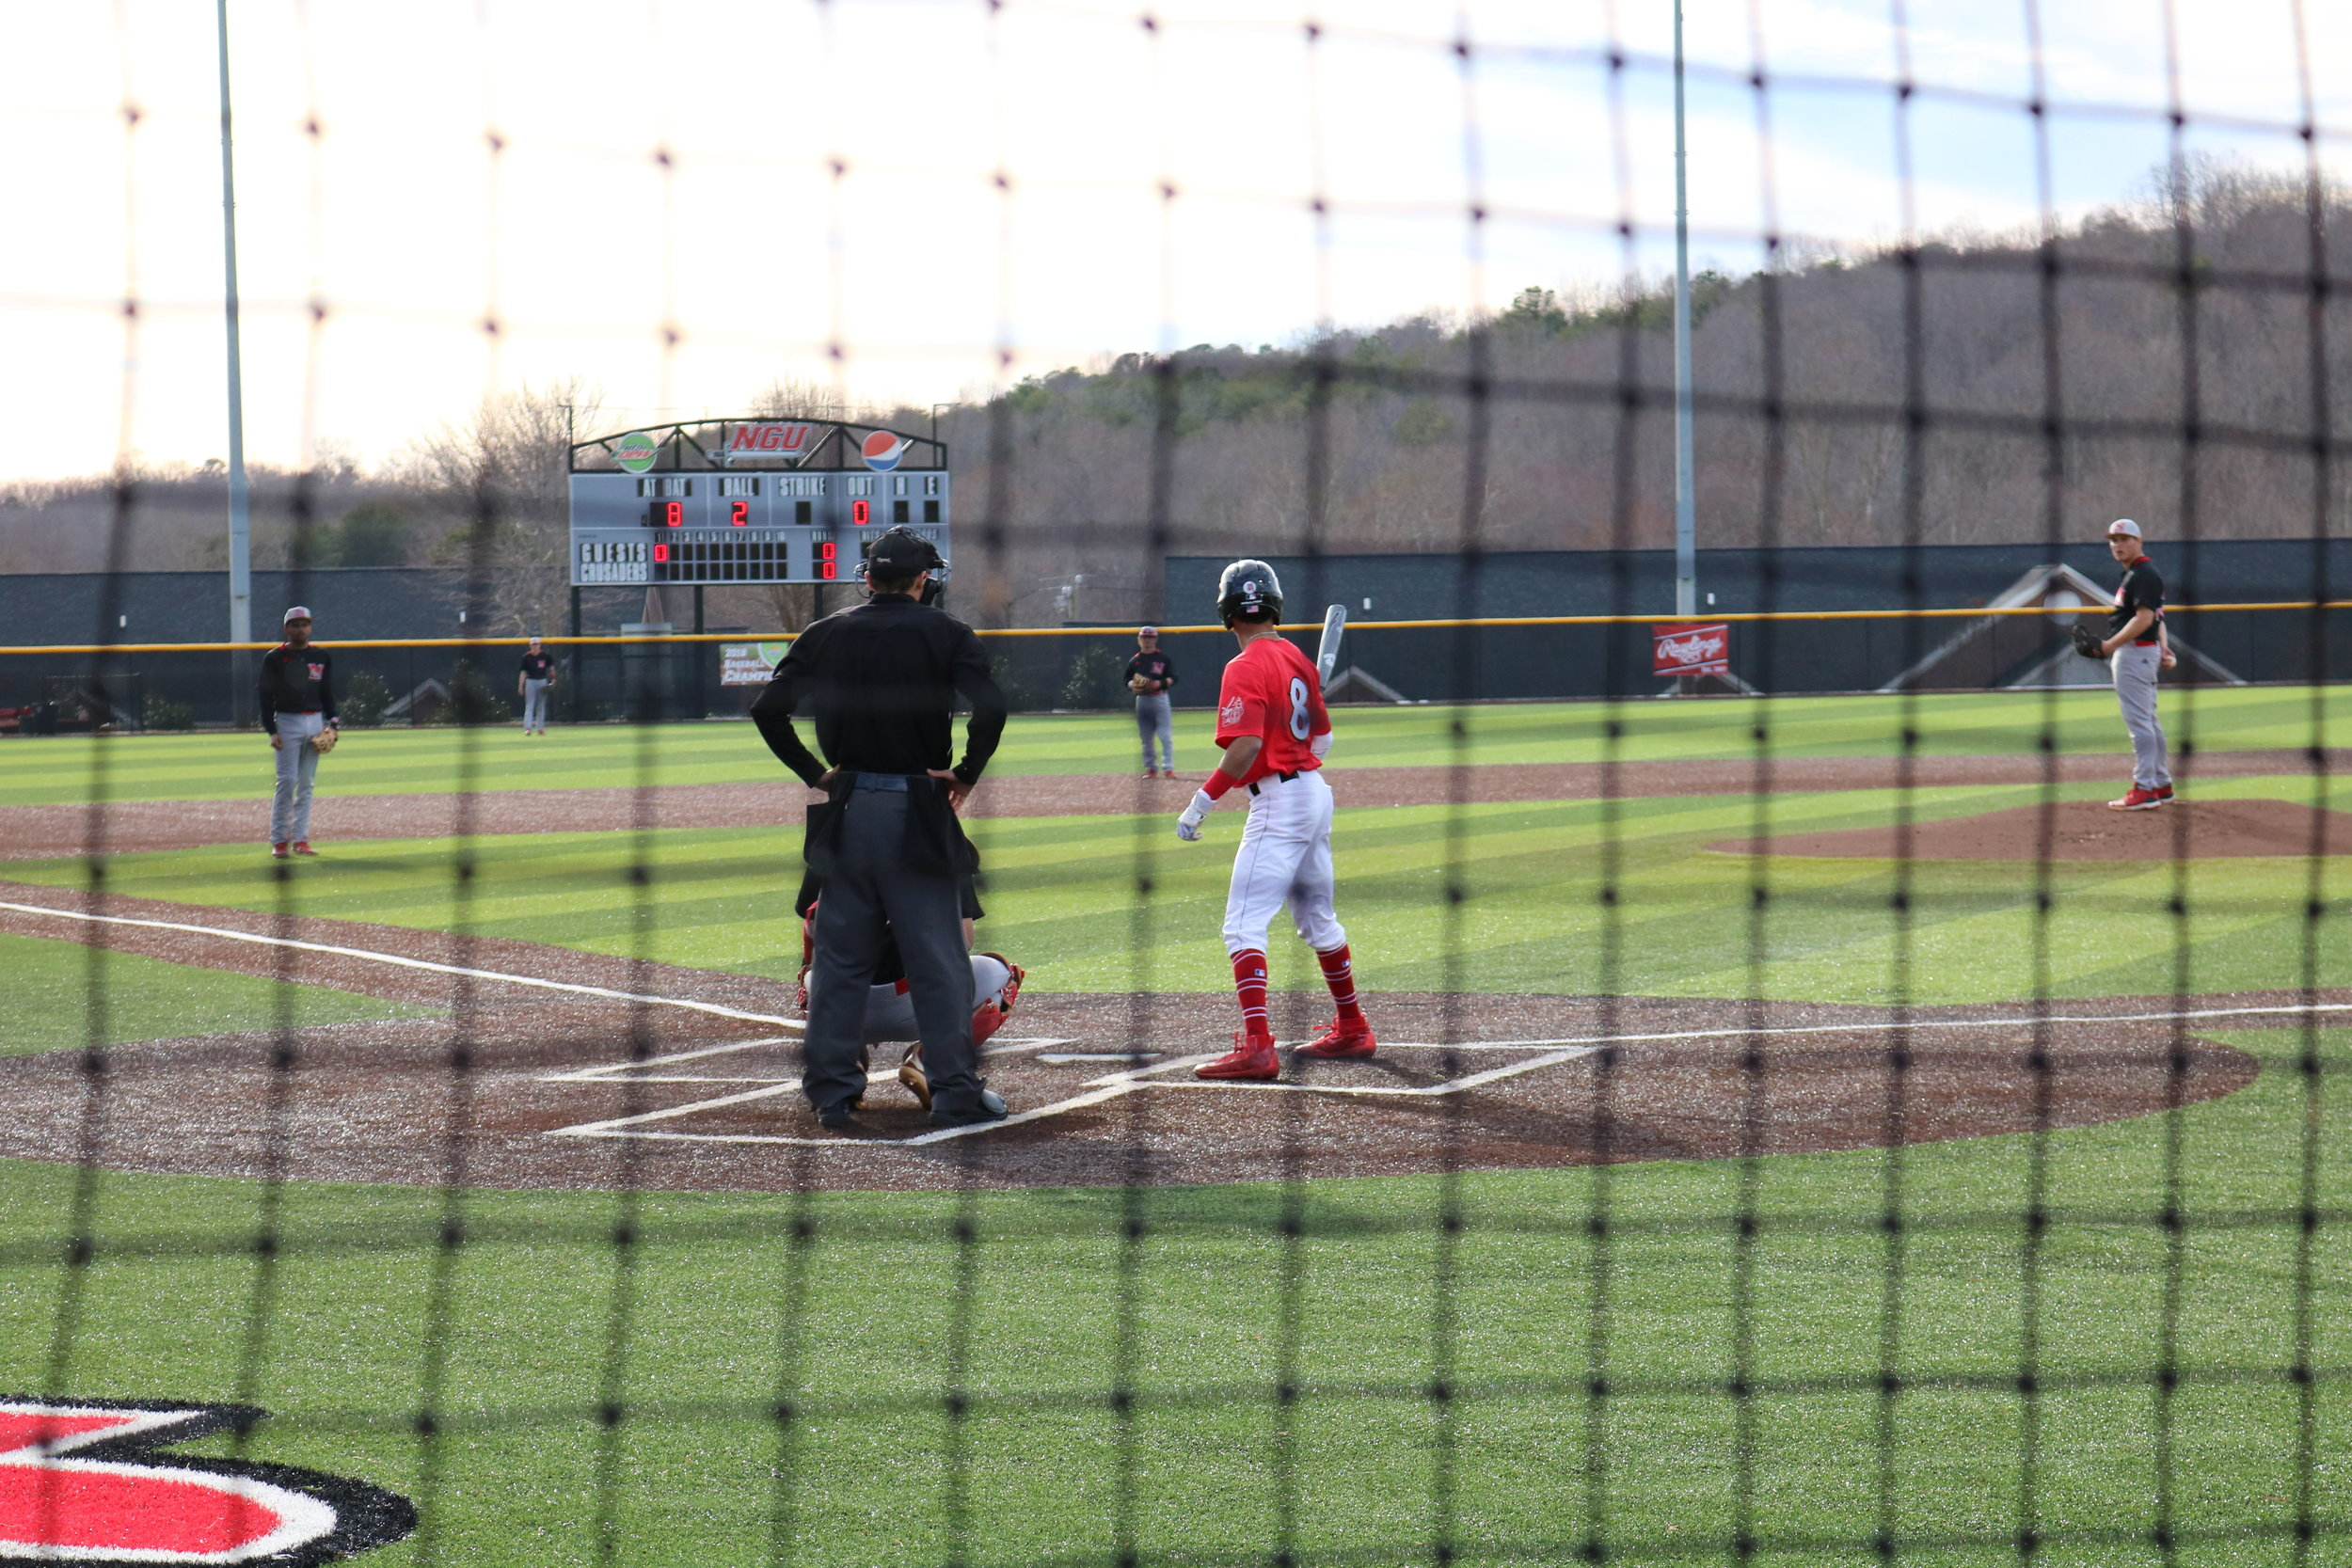 Sophomore Jeremy Whitehead (8) , steps up to bat as the first batter of the season.